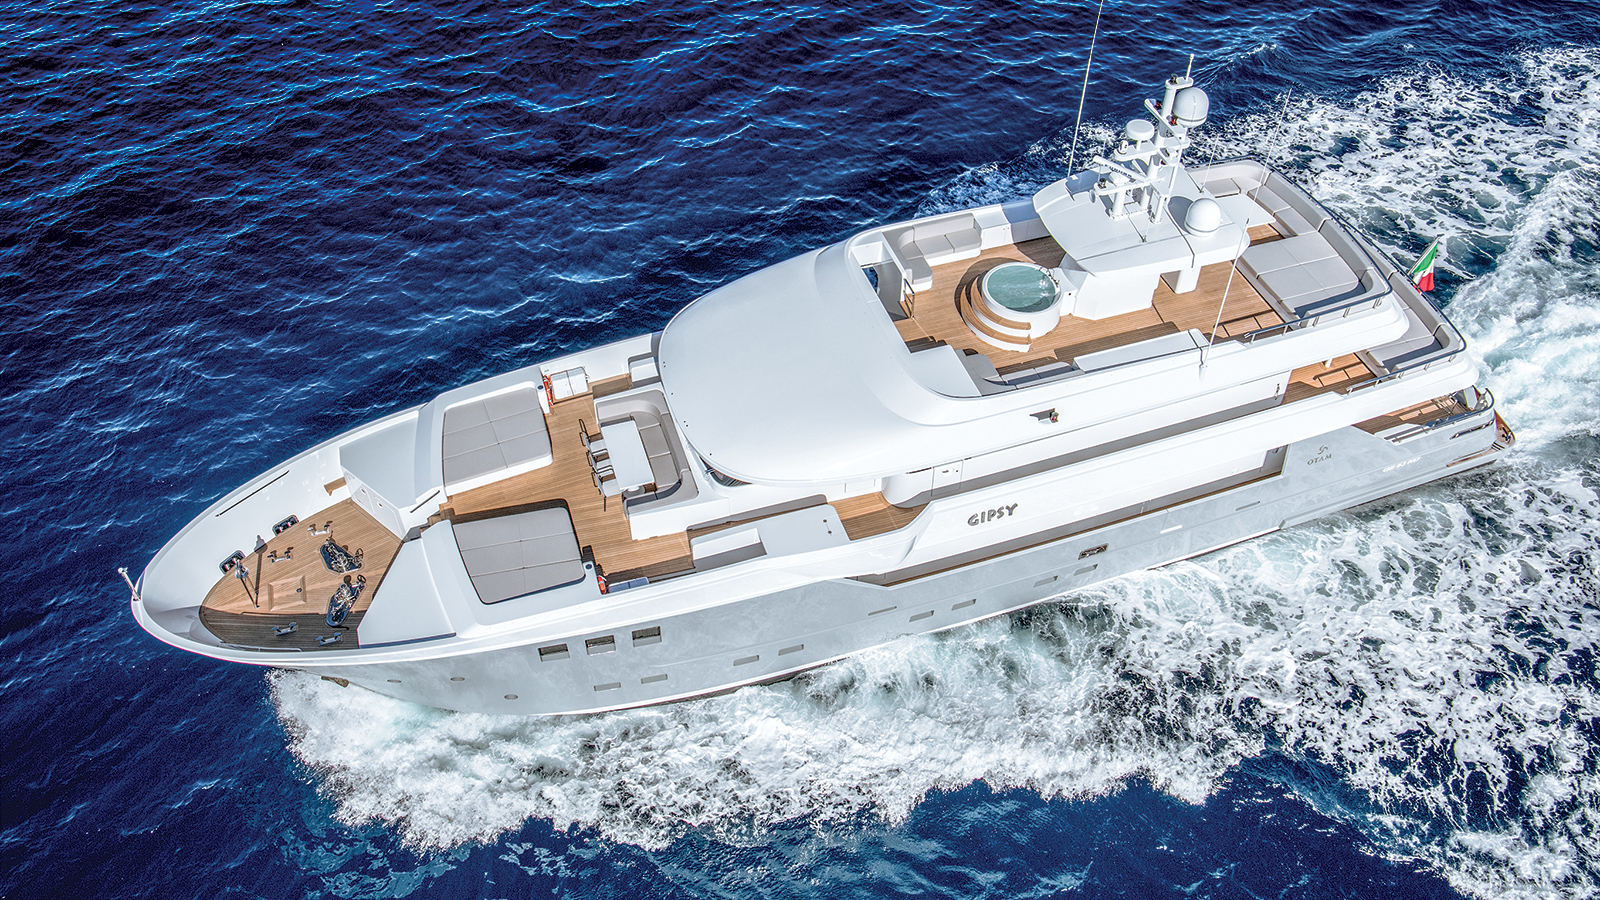 aerial-view-of-otam-super-yacht-gipsy